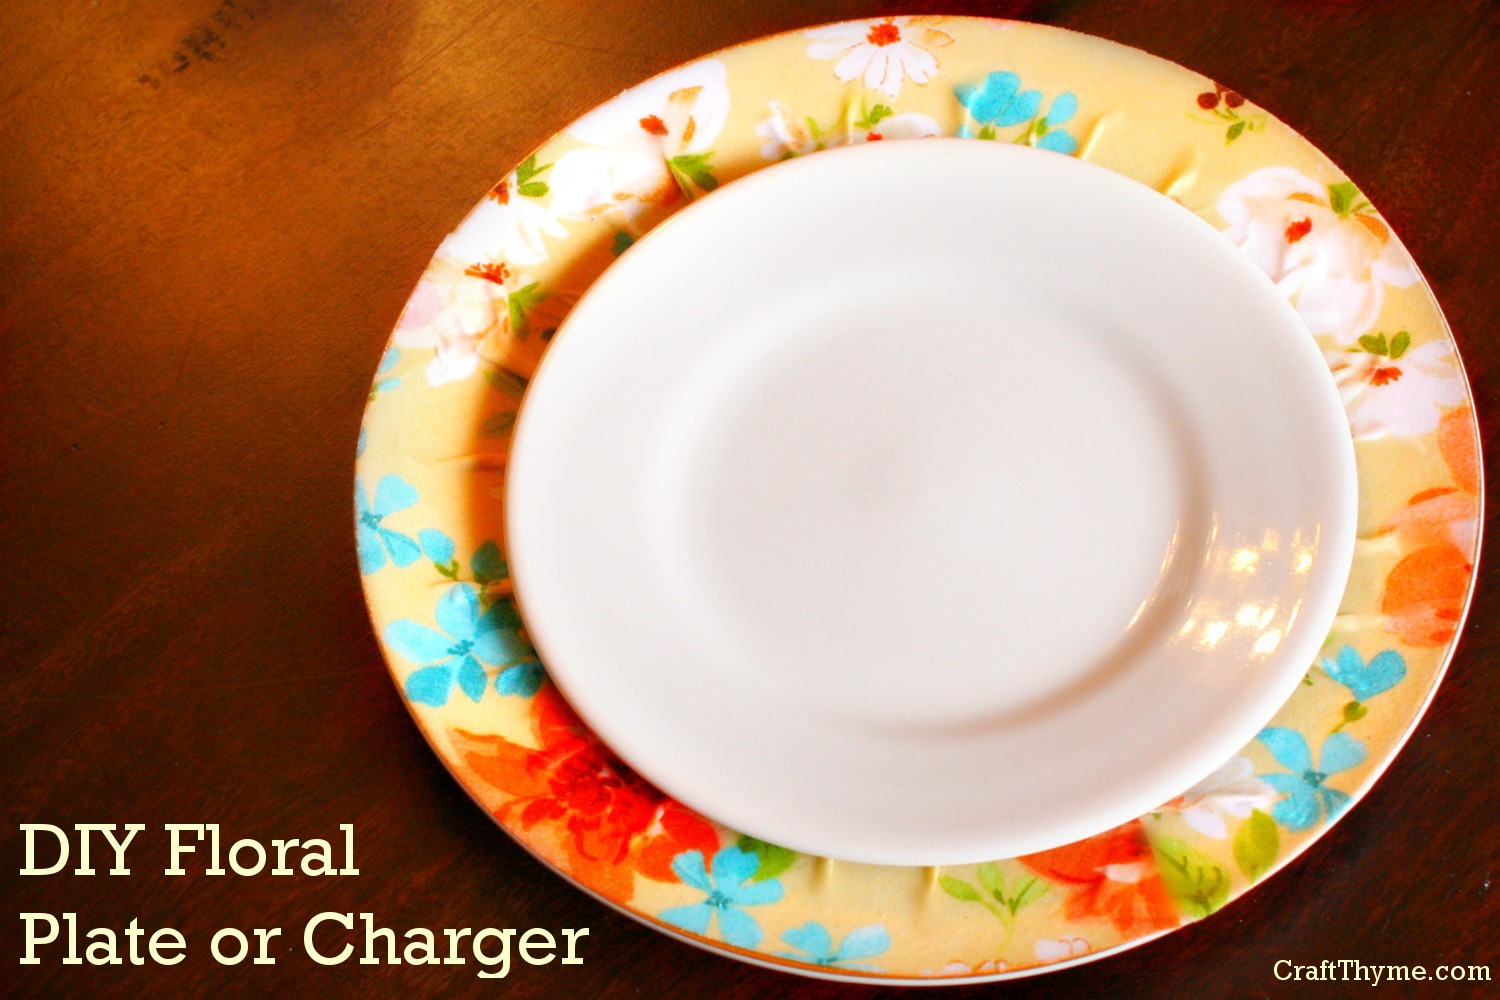 DIY floral Plate or Charger for Easter